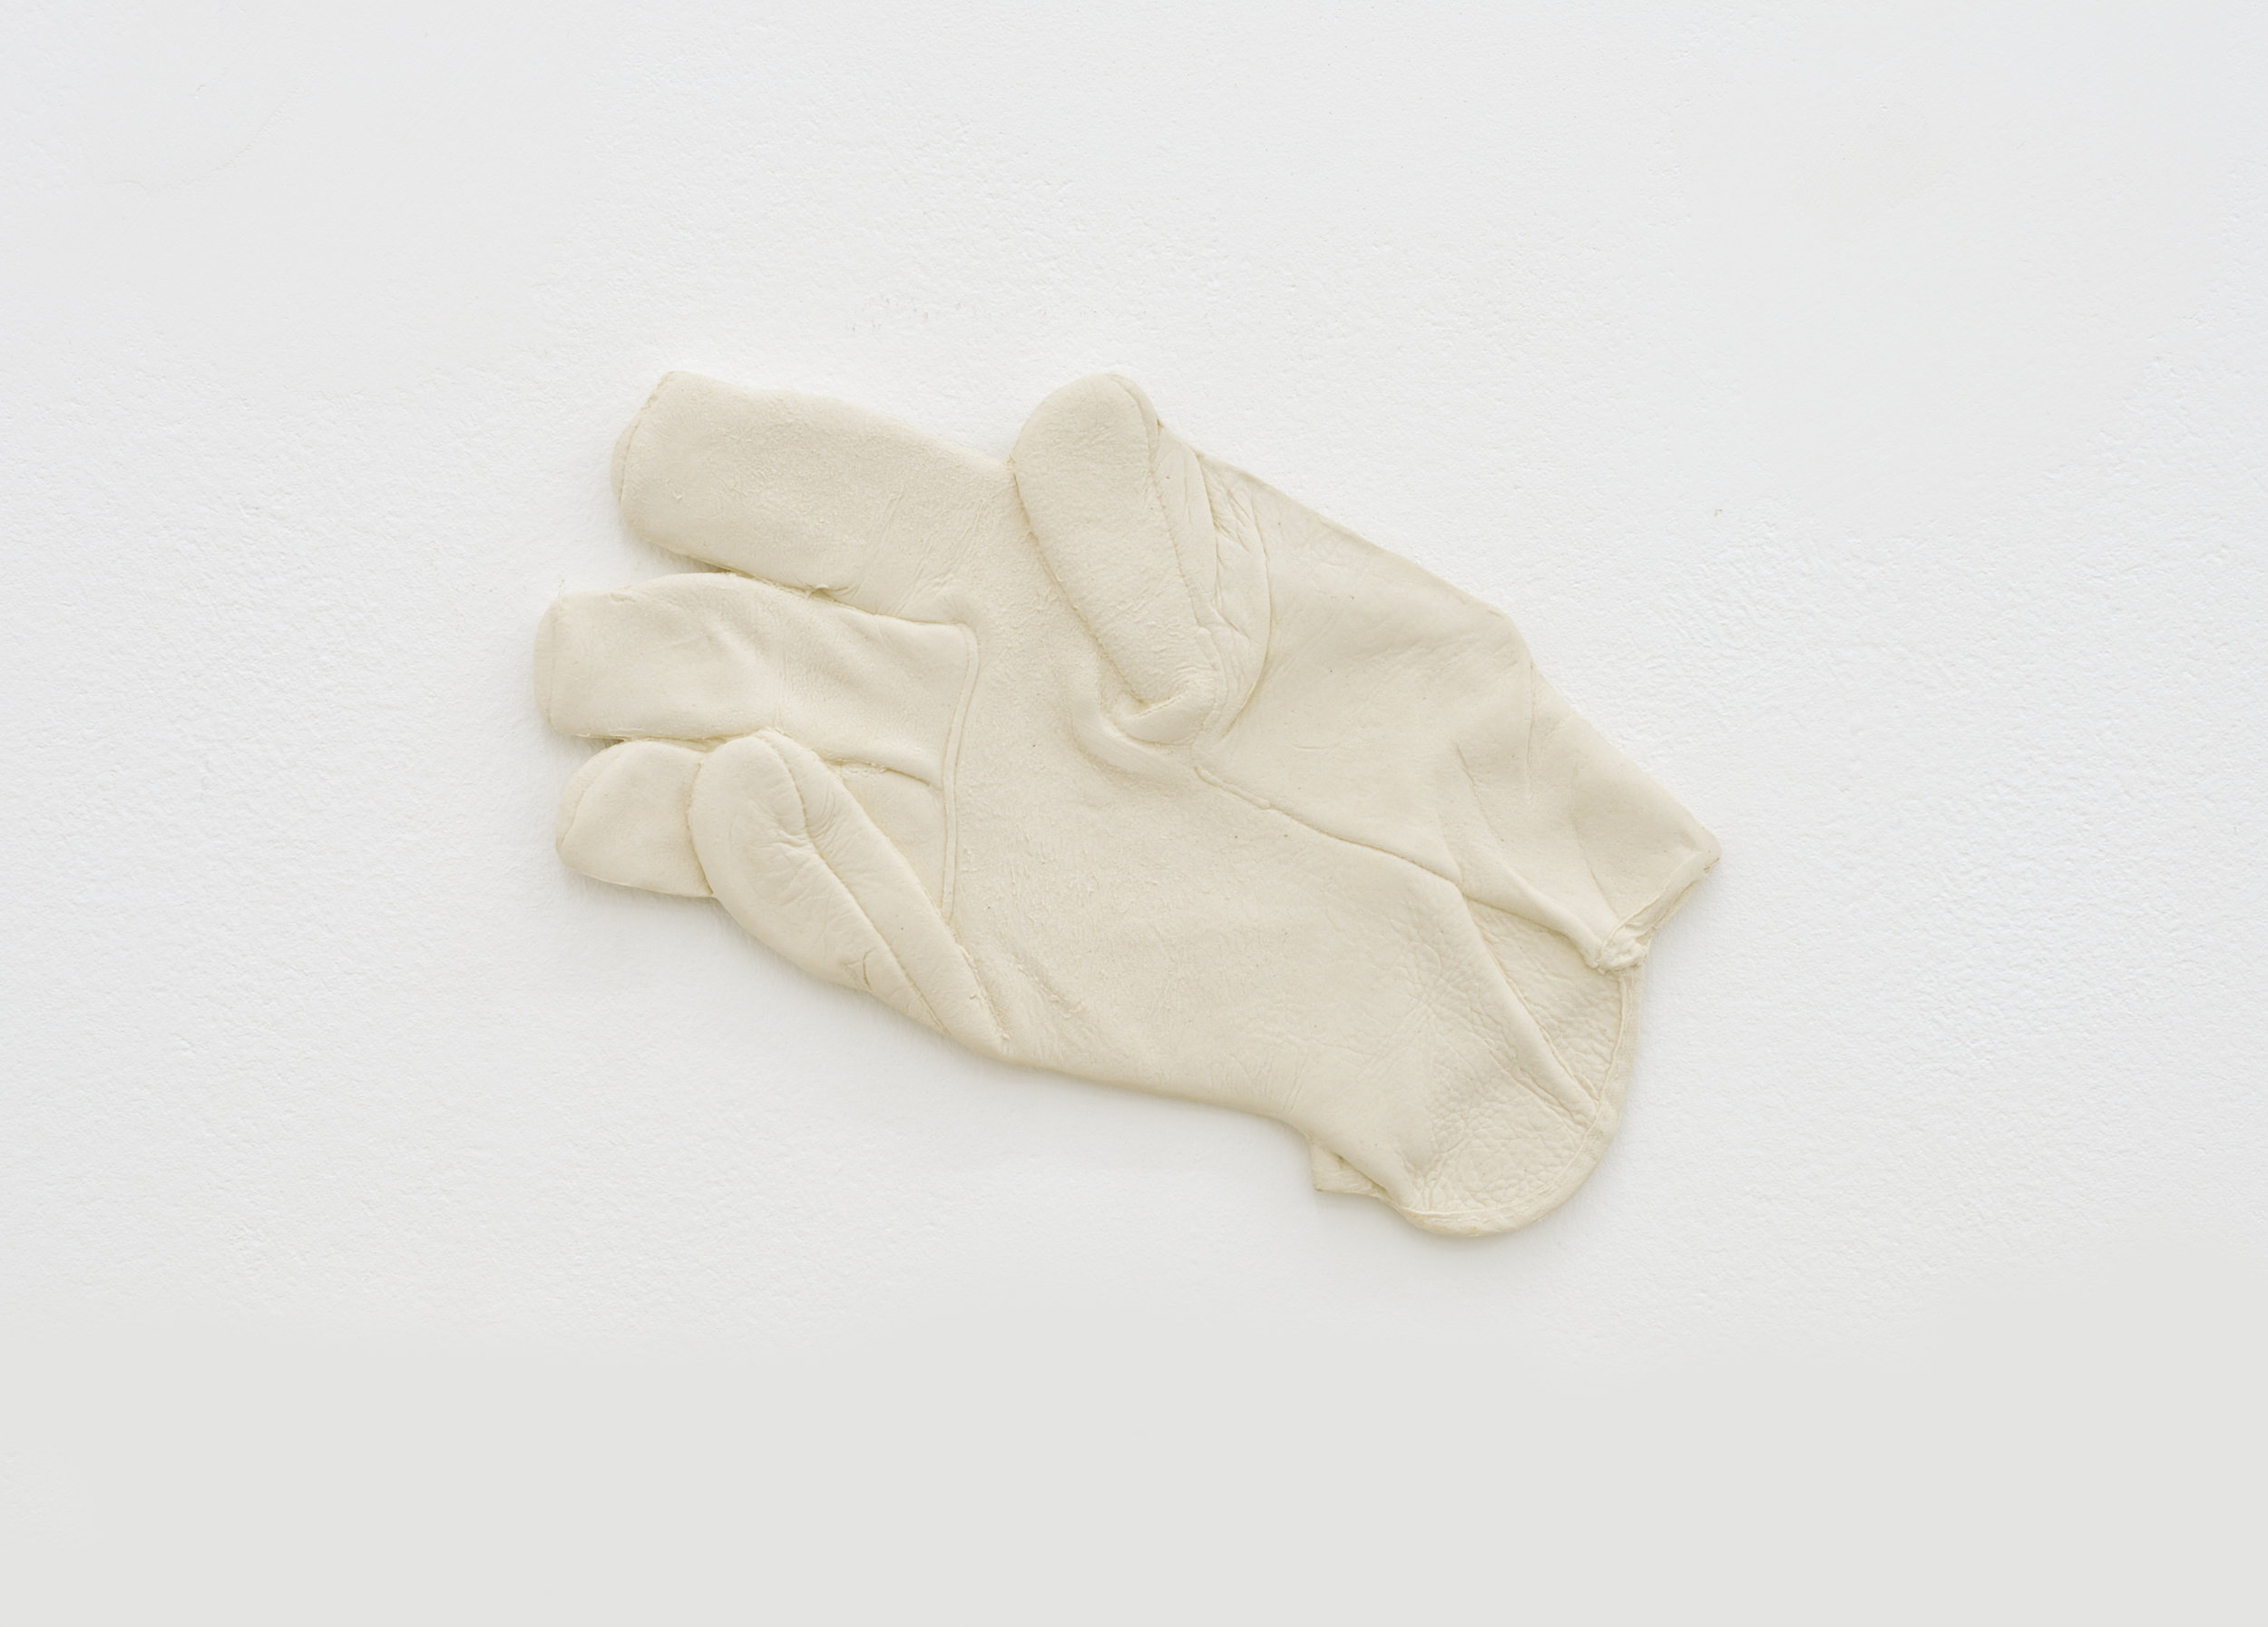 Sketchy Glove #1, 2014 porcelain clay 12 x 23 cm - 4 3/4 x 9 inches